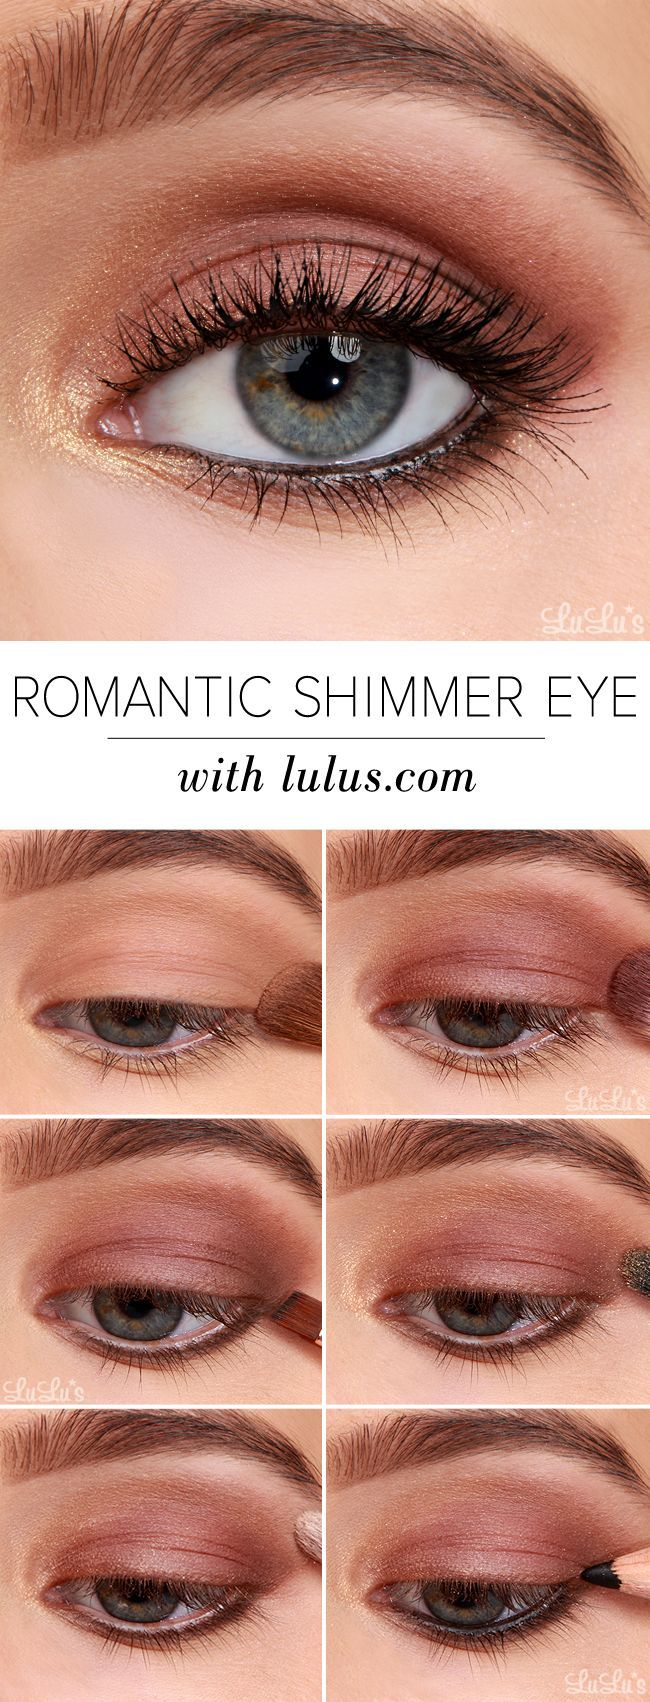 Romantic Shimmer Eyeshadow Tutorial #CutieEyeShadow